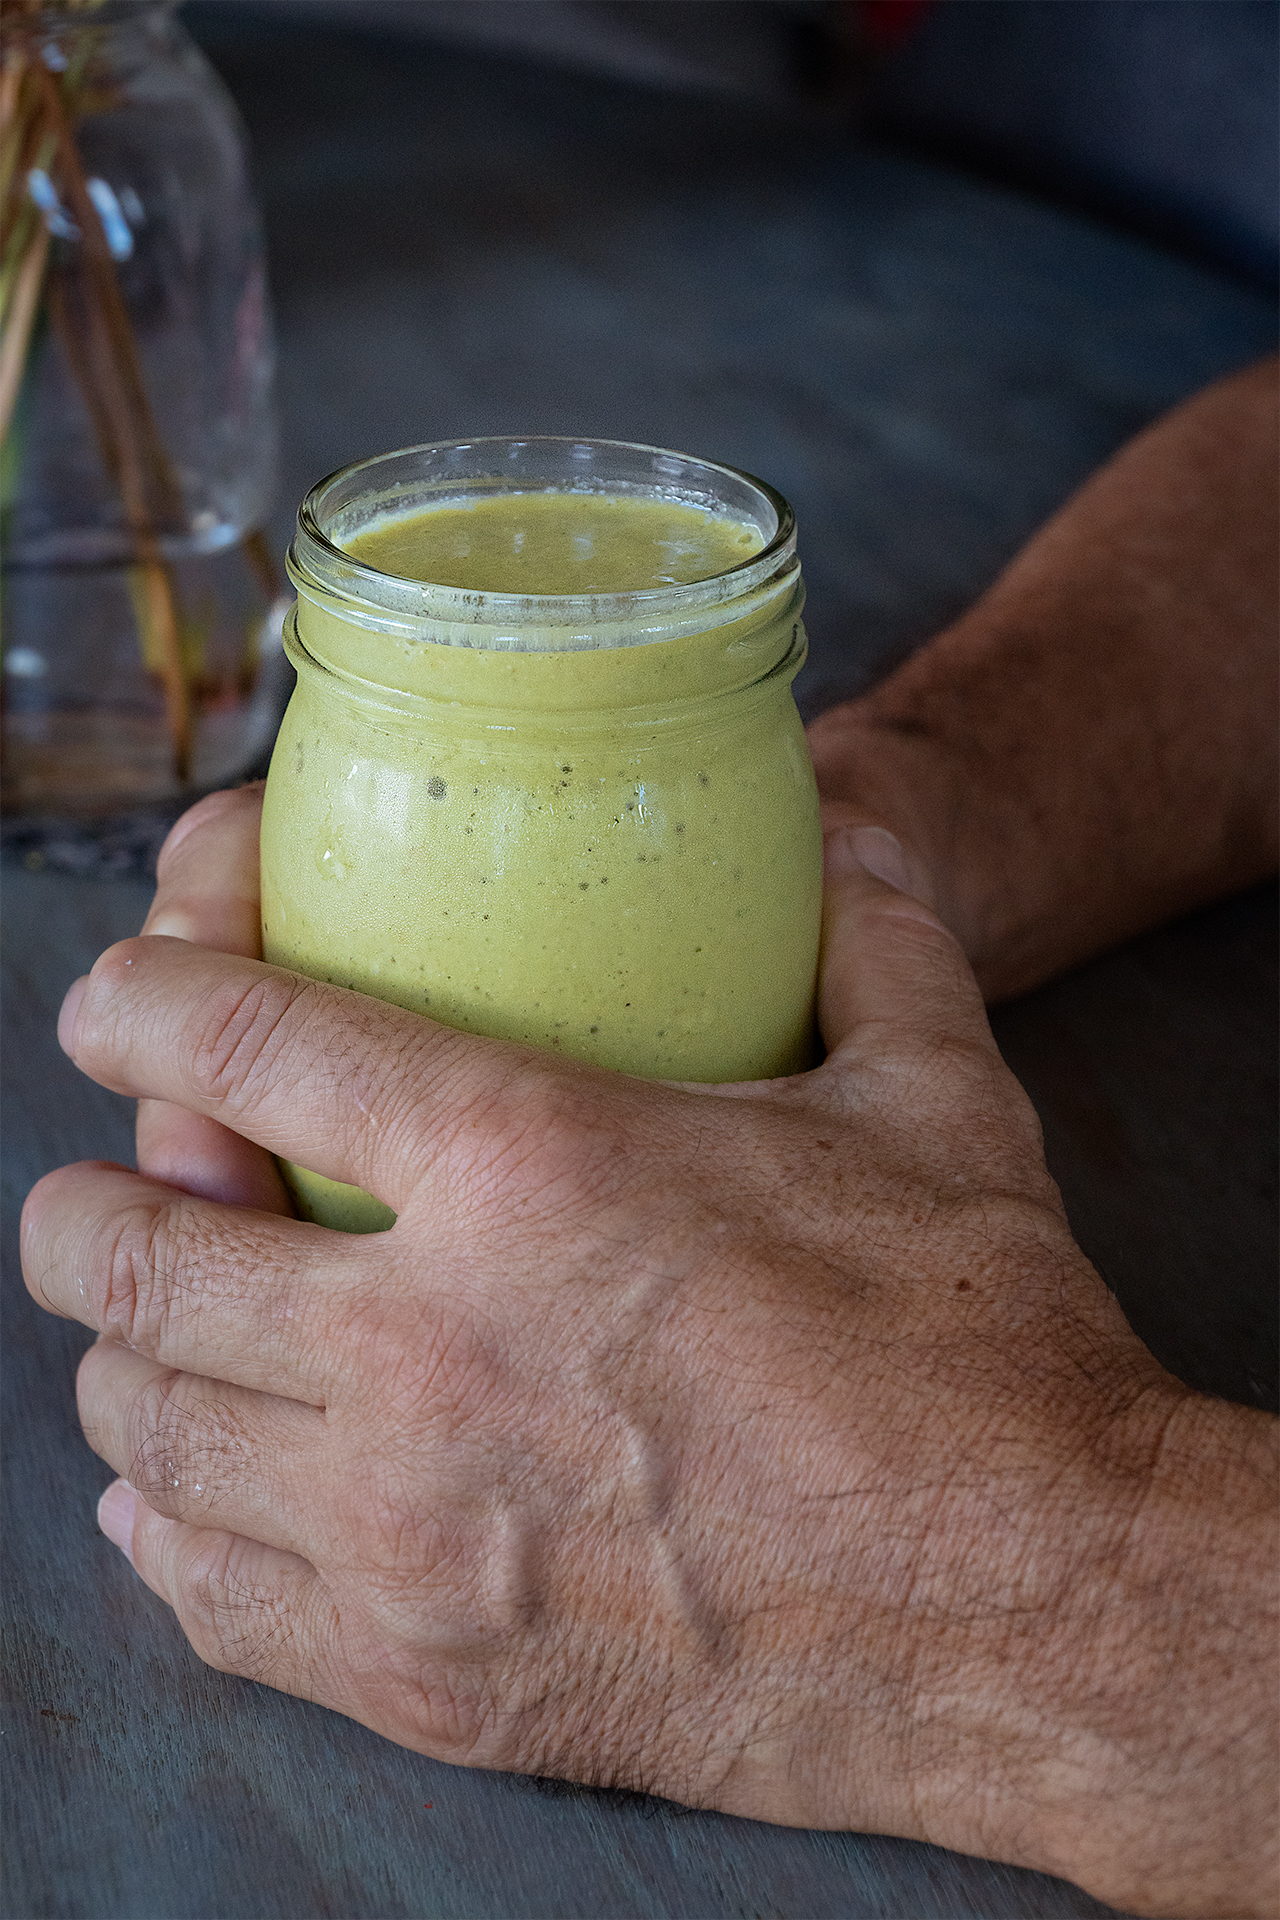 These hands make good things. This muted golden-green smoothie, for one.